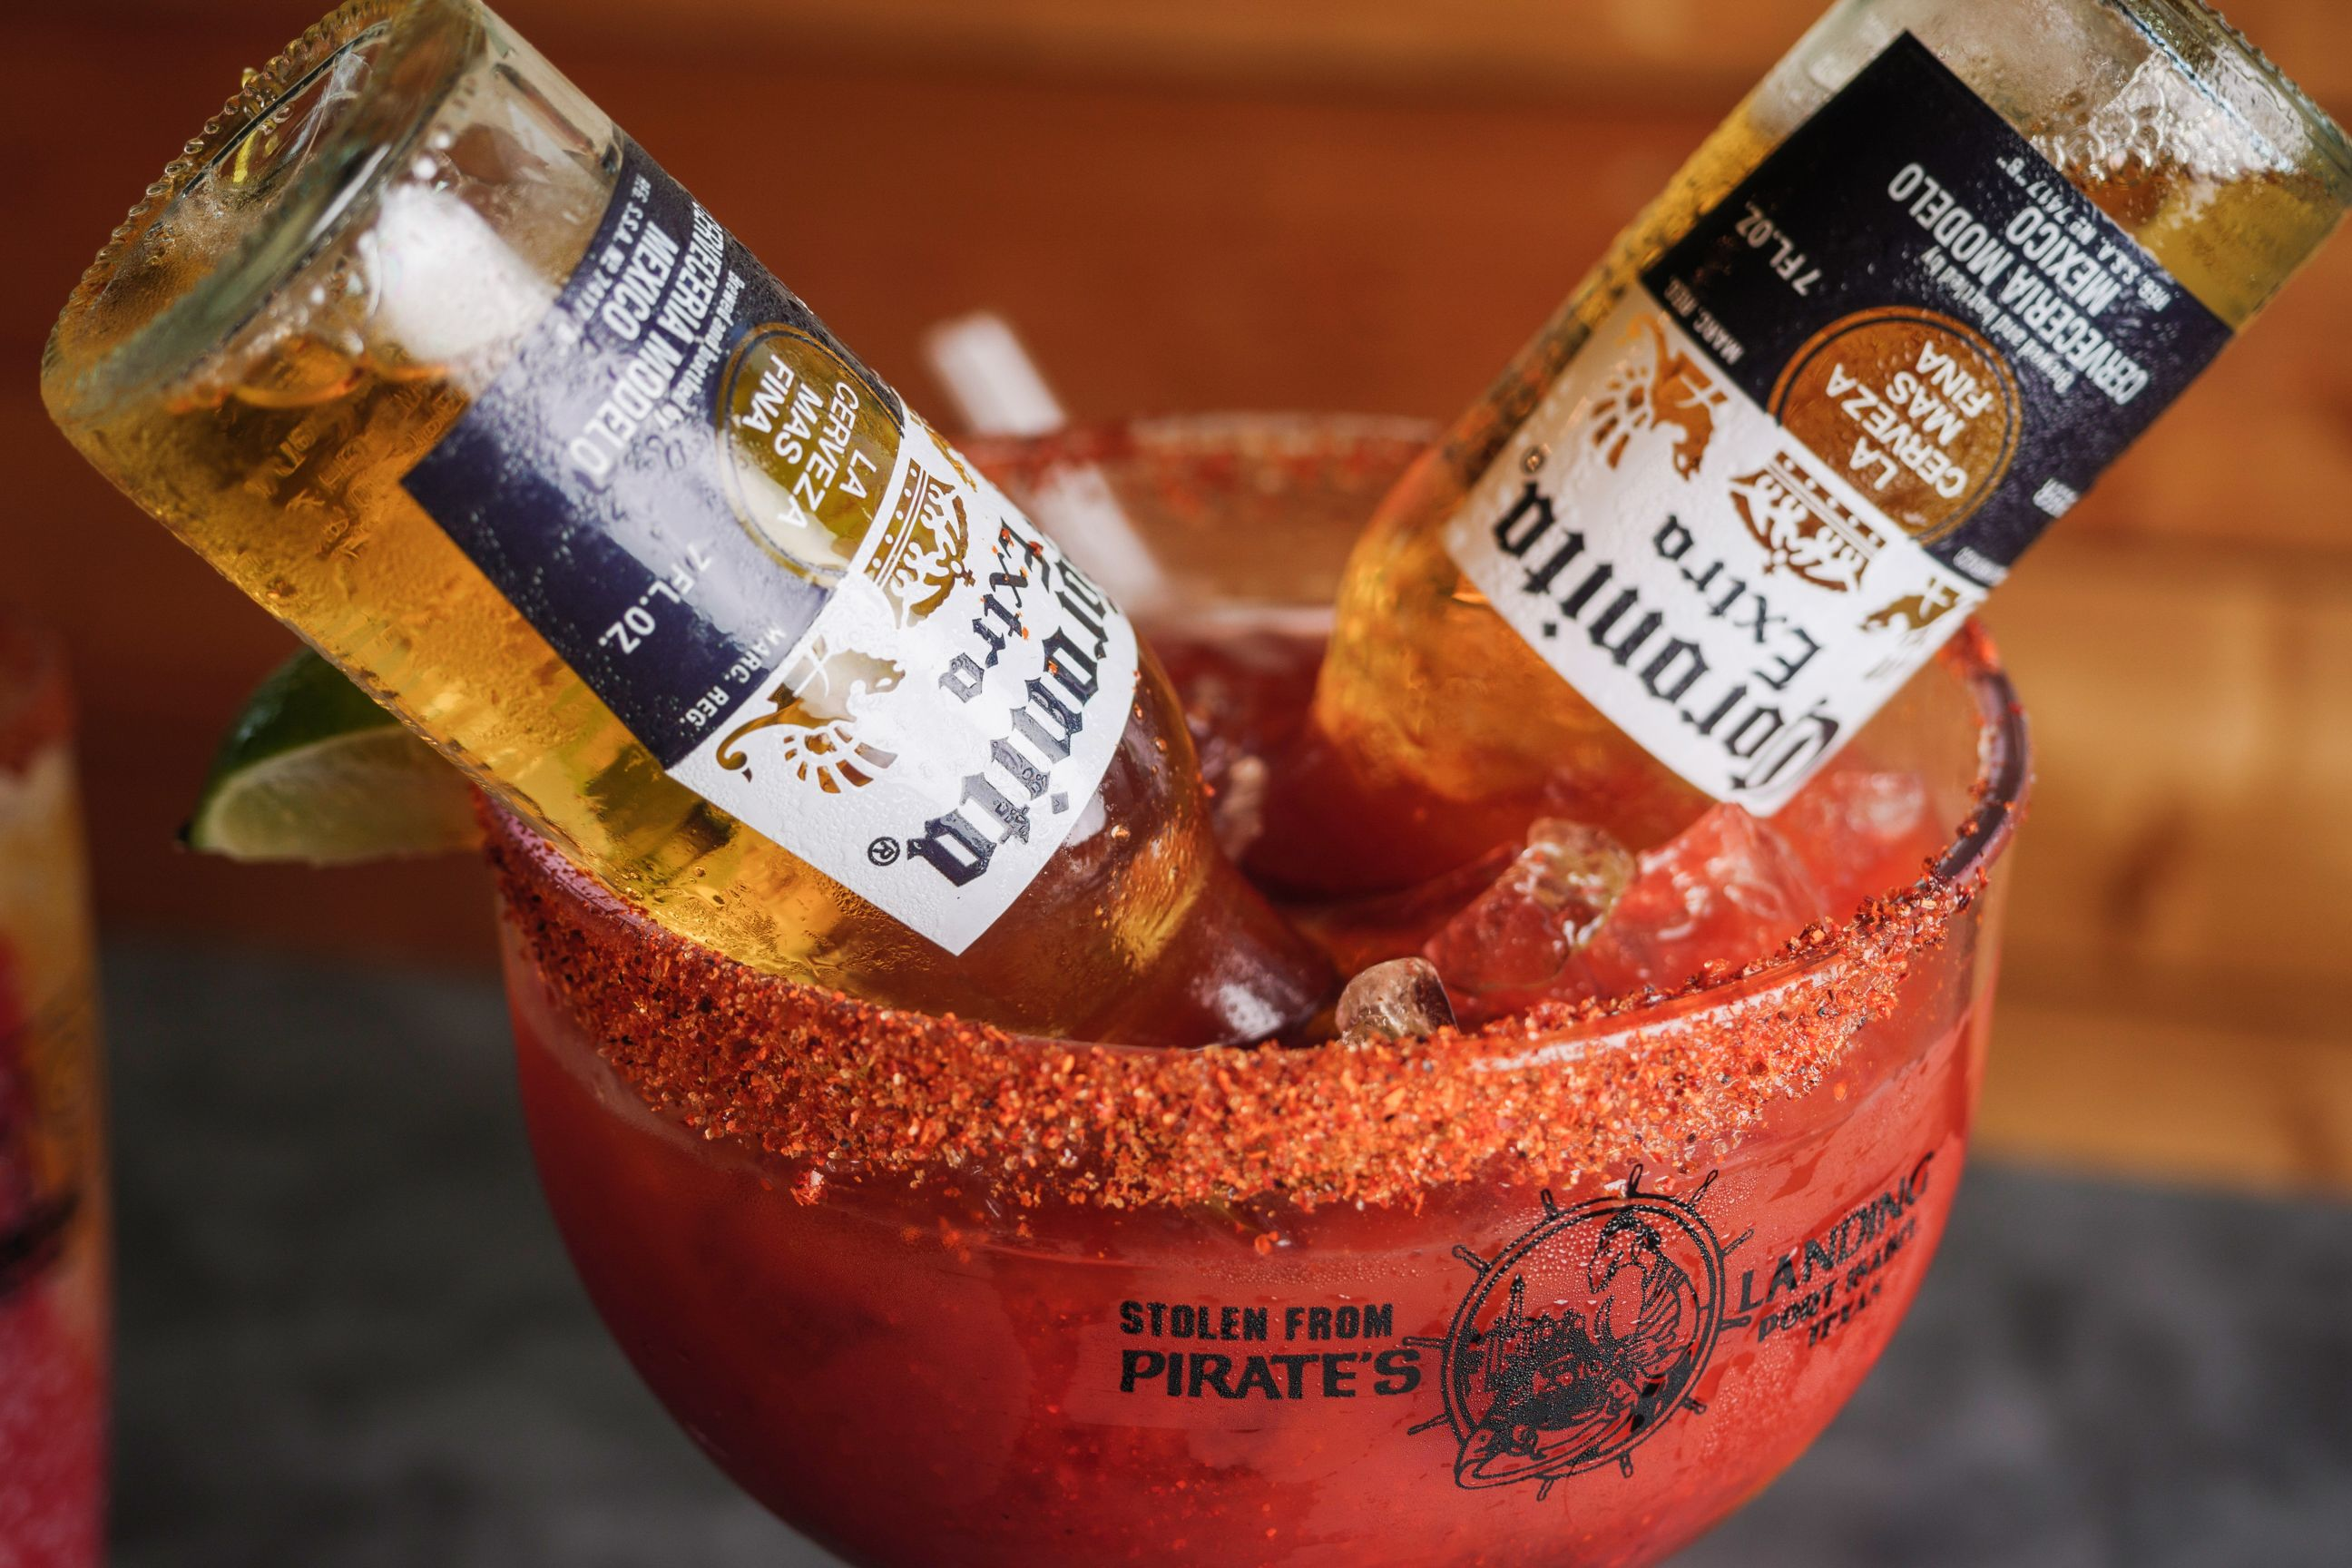 Michelada with two bottles of Corona beer and chili powder rim